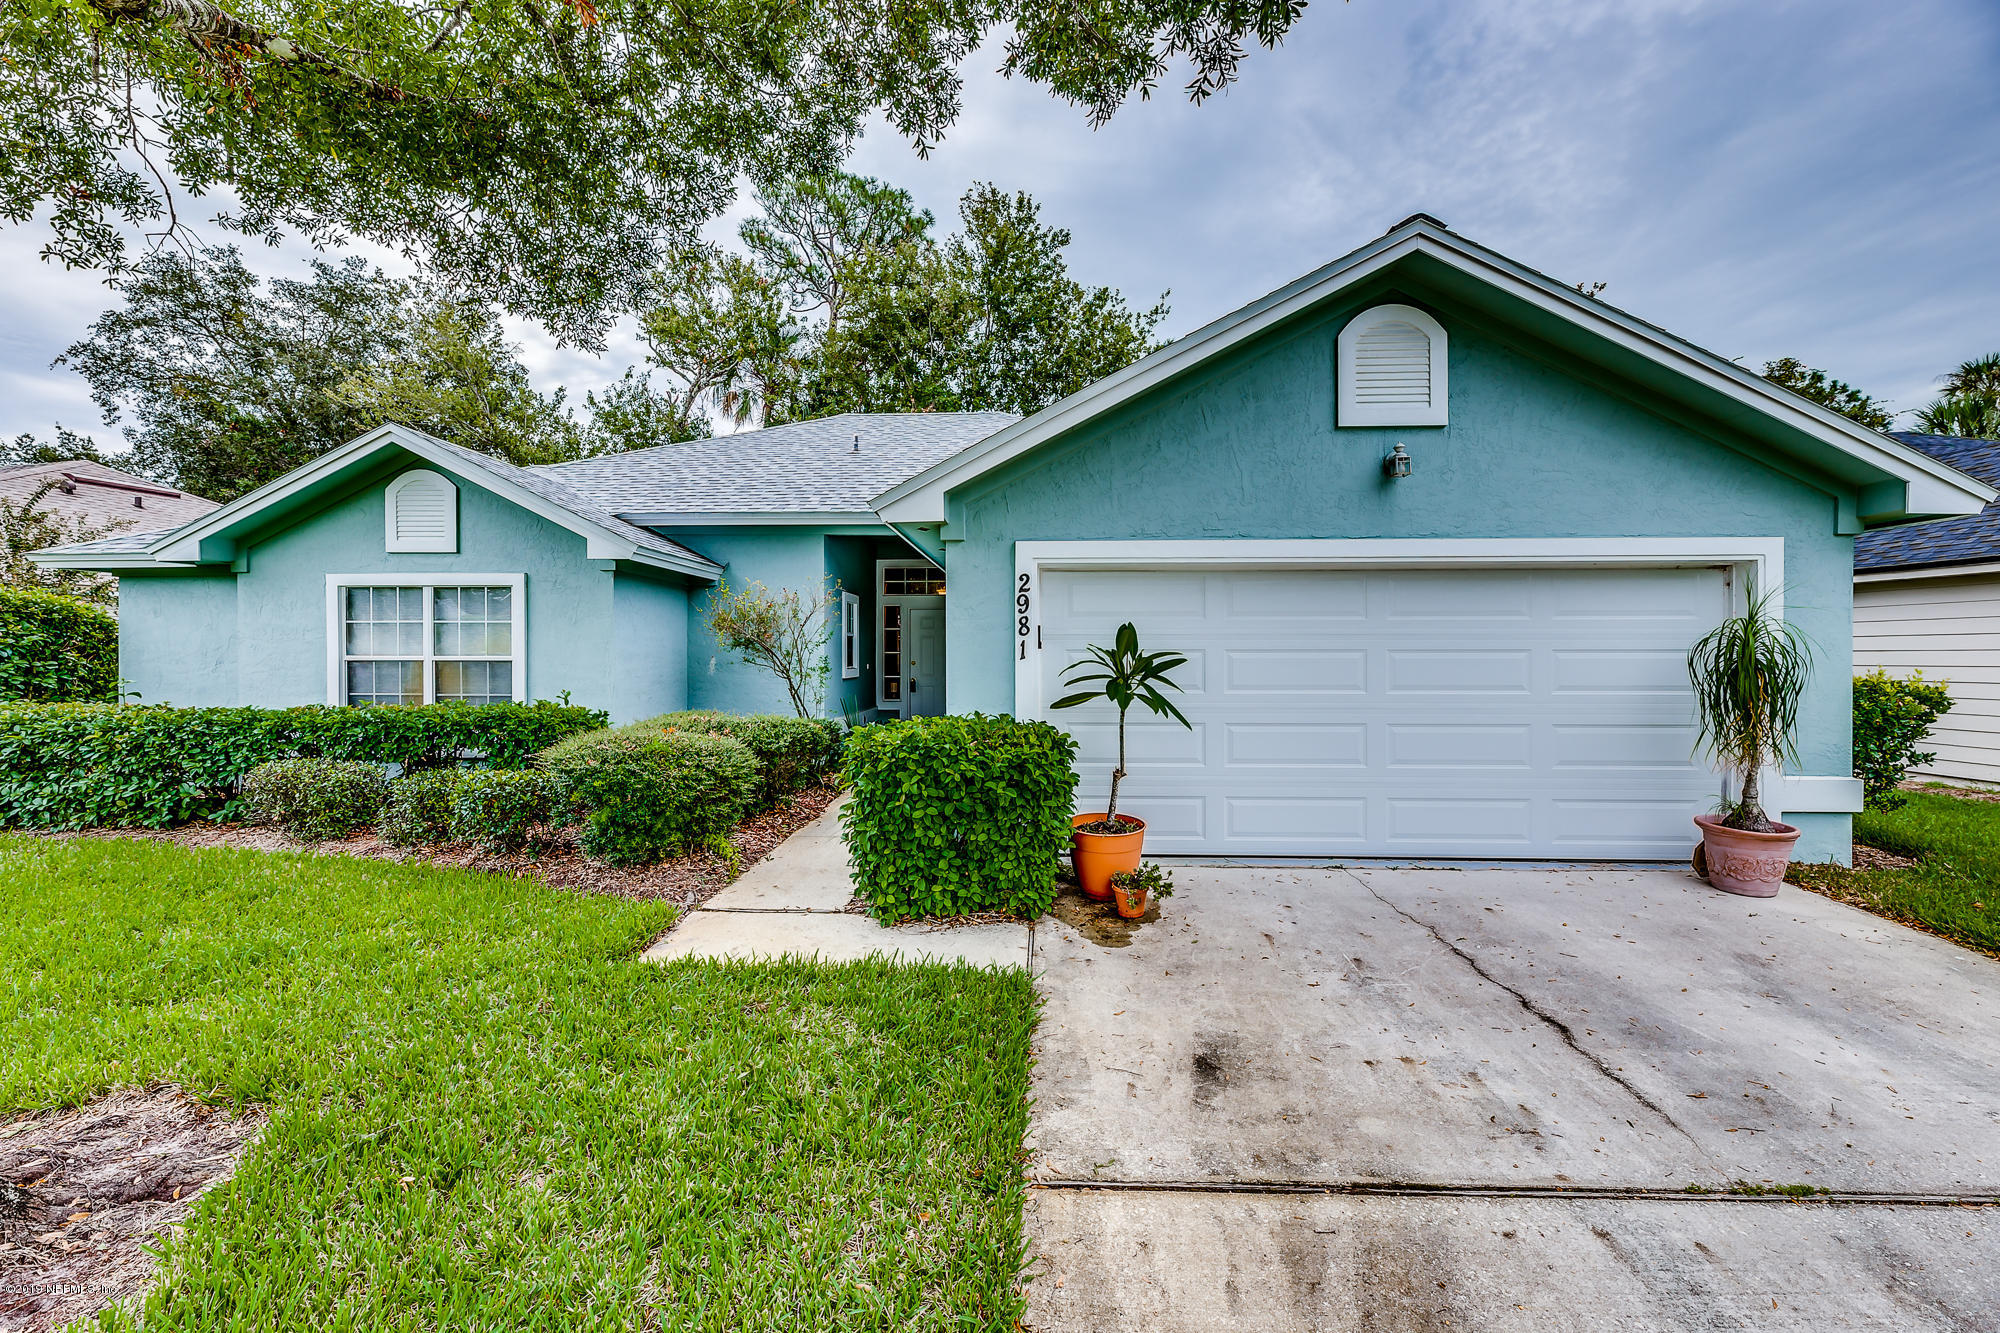 2981 SANCTUARY, JACKSONVILLE BEACH, FLORIDA 32250, 3 Bedrooms Bedrooms, ,2 BathroomsBathrooms,Residential - single family,For sale,SANCTUARY,1020735